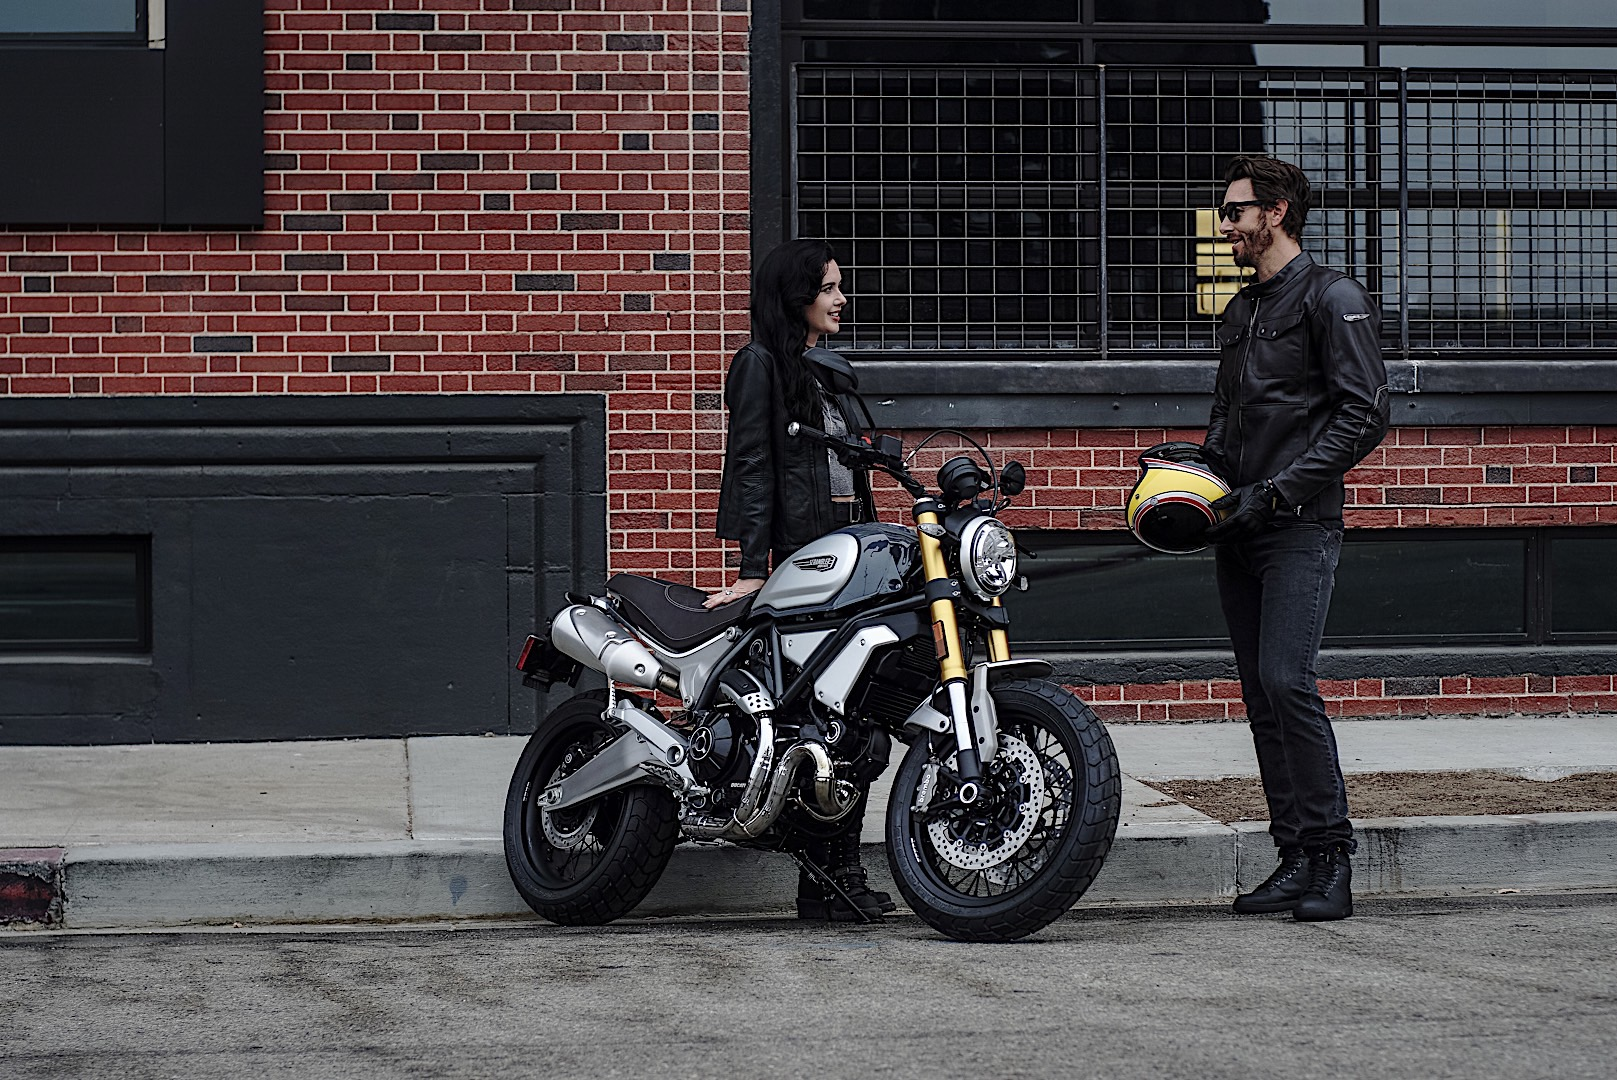 2018 Ducati Scrambler 1100 Is Out To Play With The Big Boys At Eicma